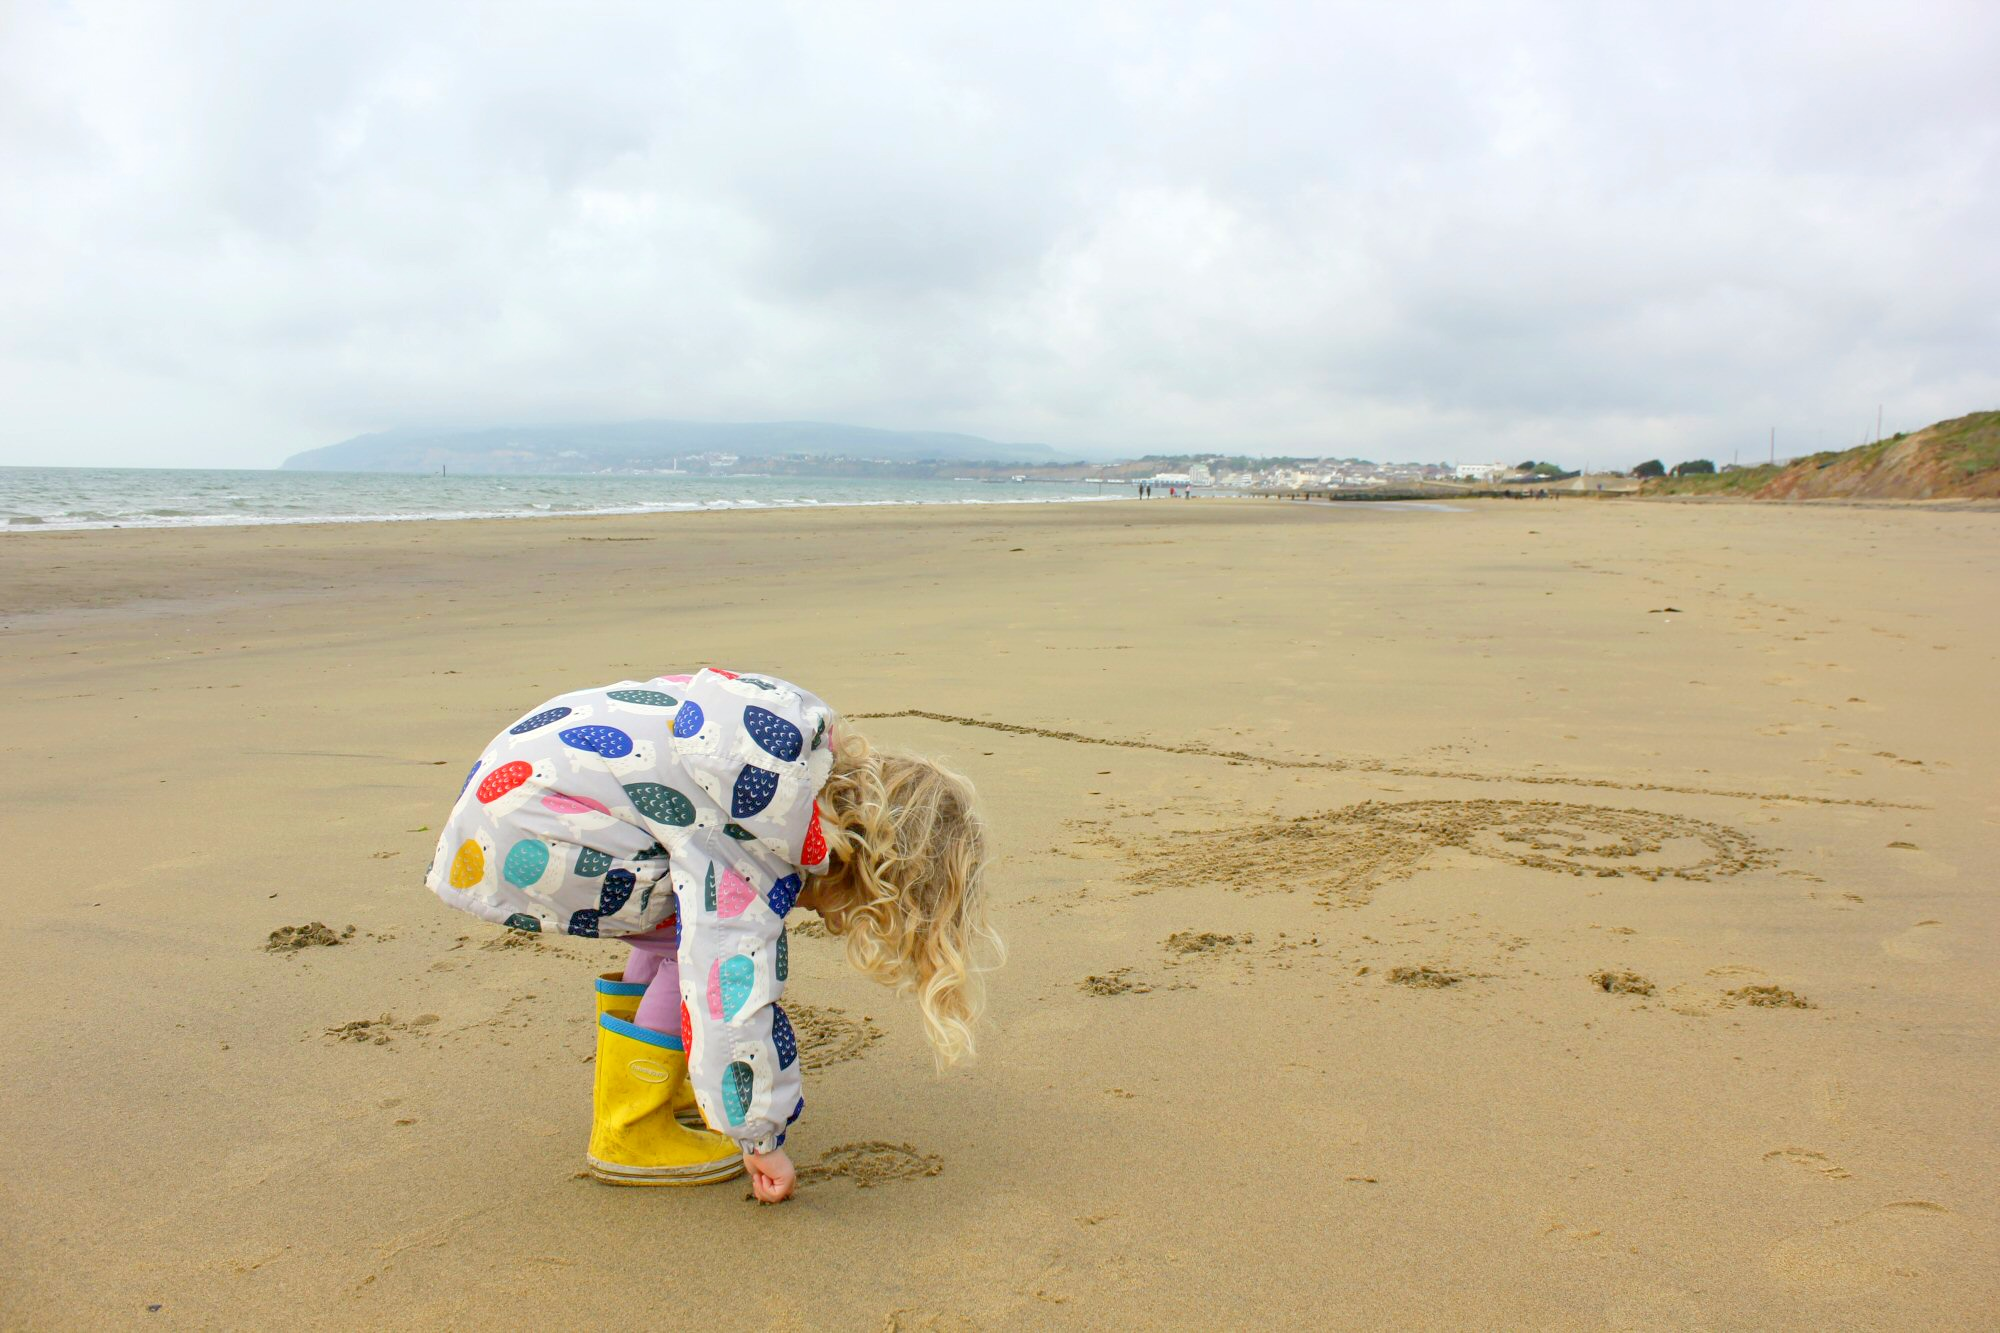 My daughter drawng shapes in the sand on our fossil walk at Yaverland beach - hunting the Isle of Wight dinosaurs